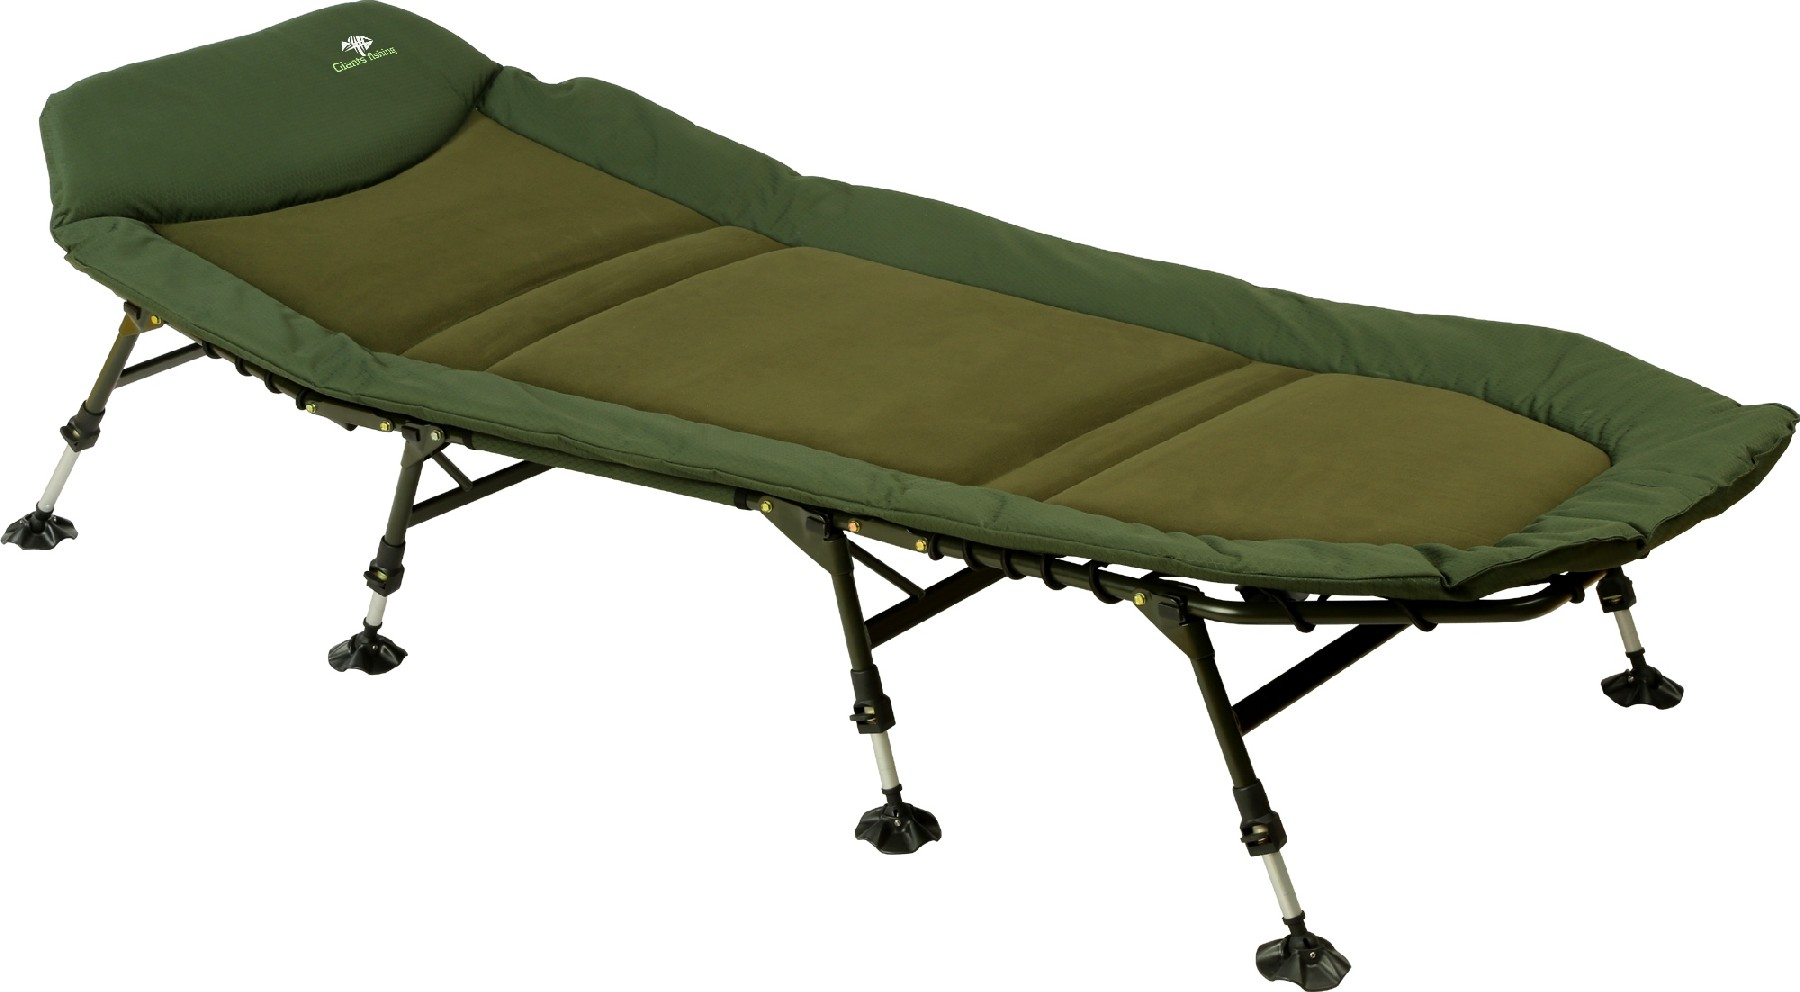 Giants Fishing Bedchair Flat Fleece XL 8Leg